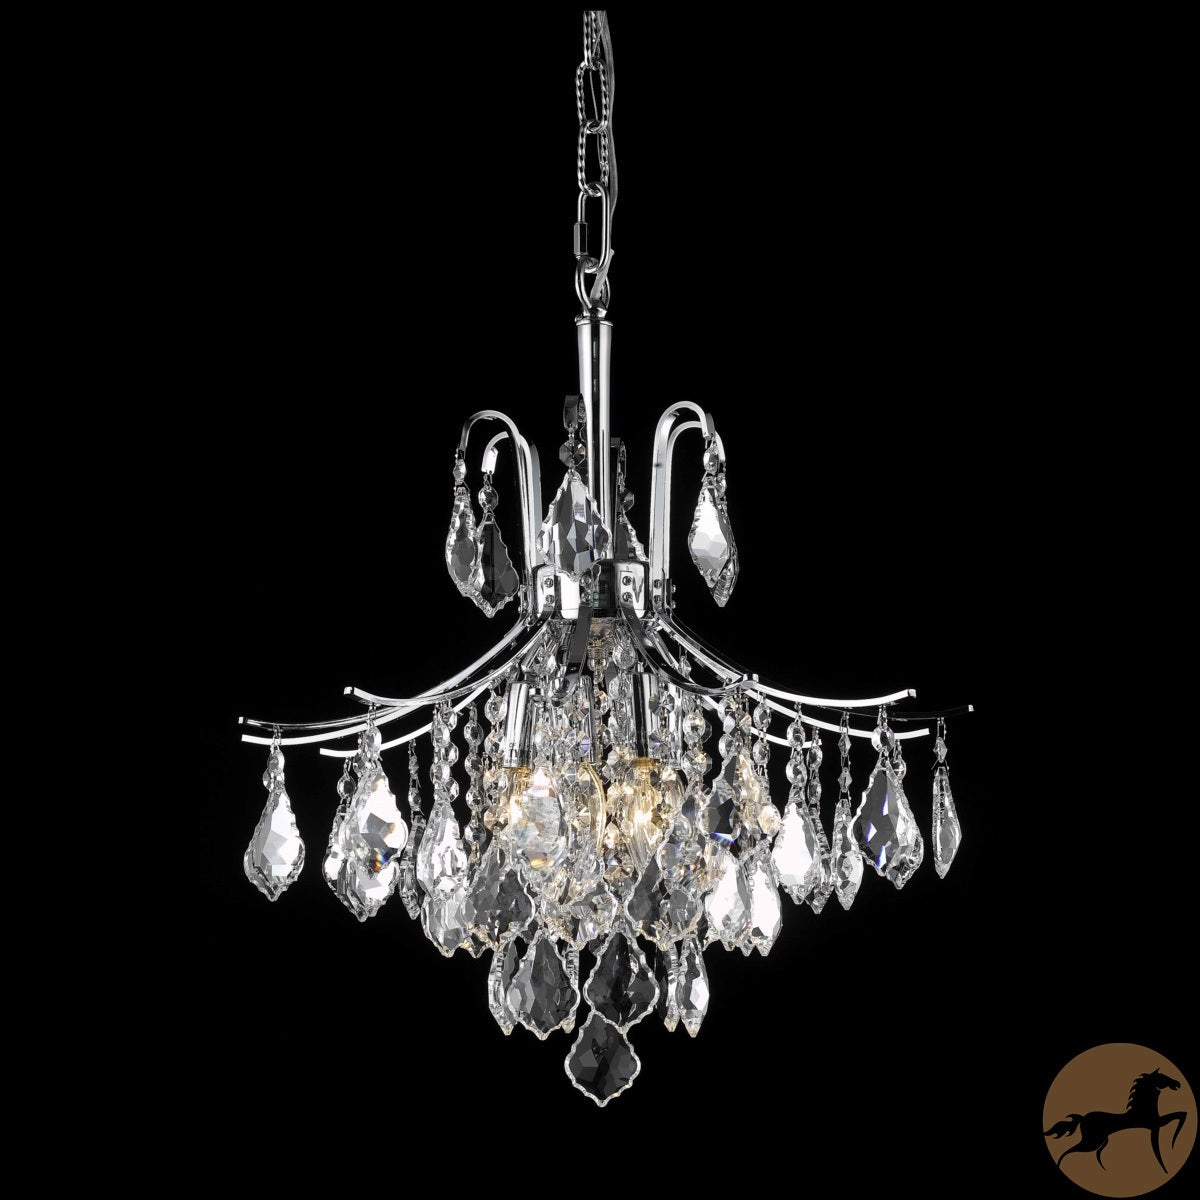 Christopher Knight Home Crystal Chrome 6-light 64955 Collection Chandelier at Sears.com